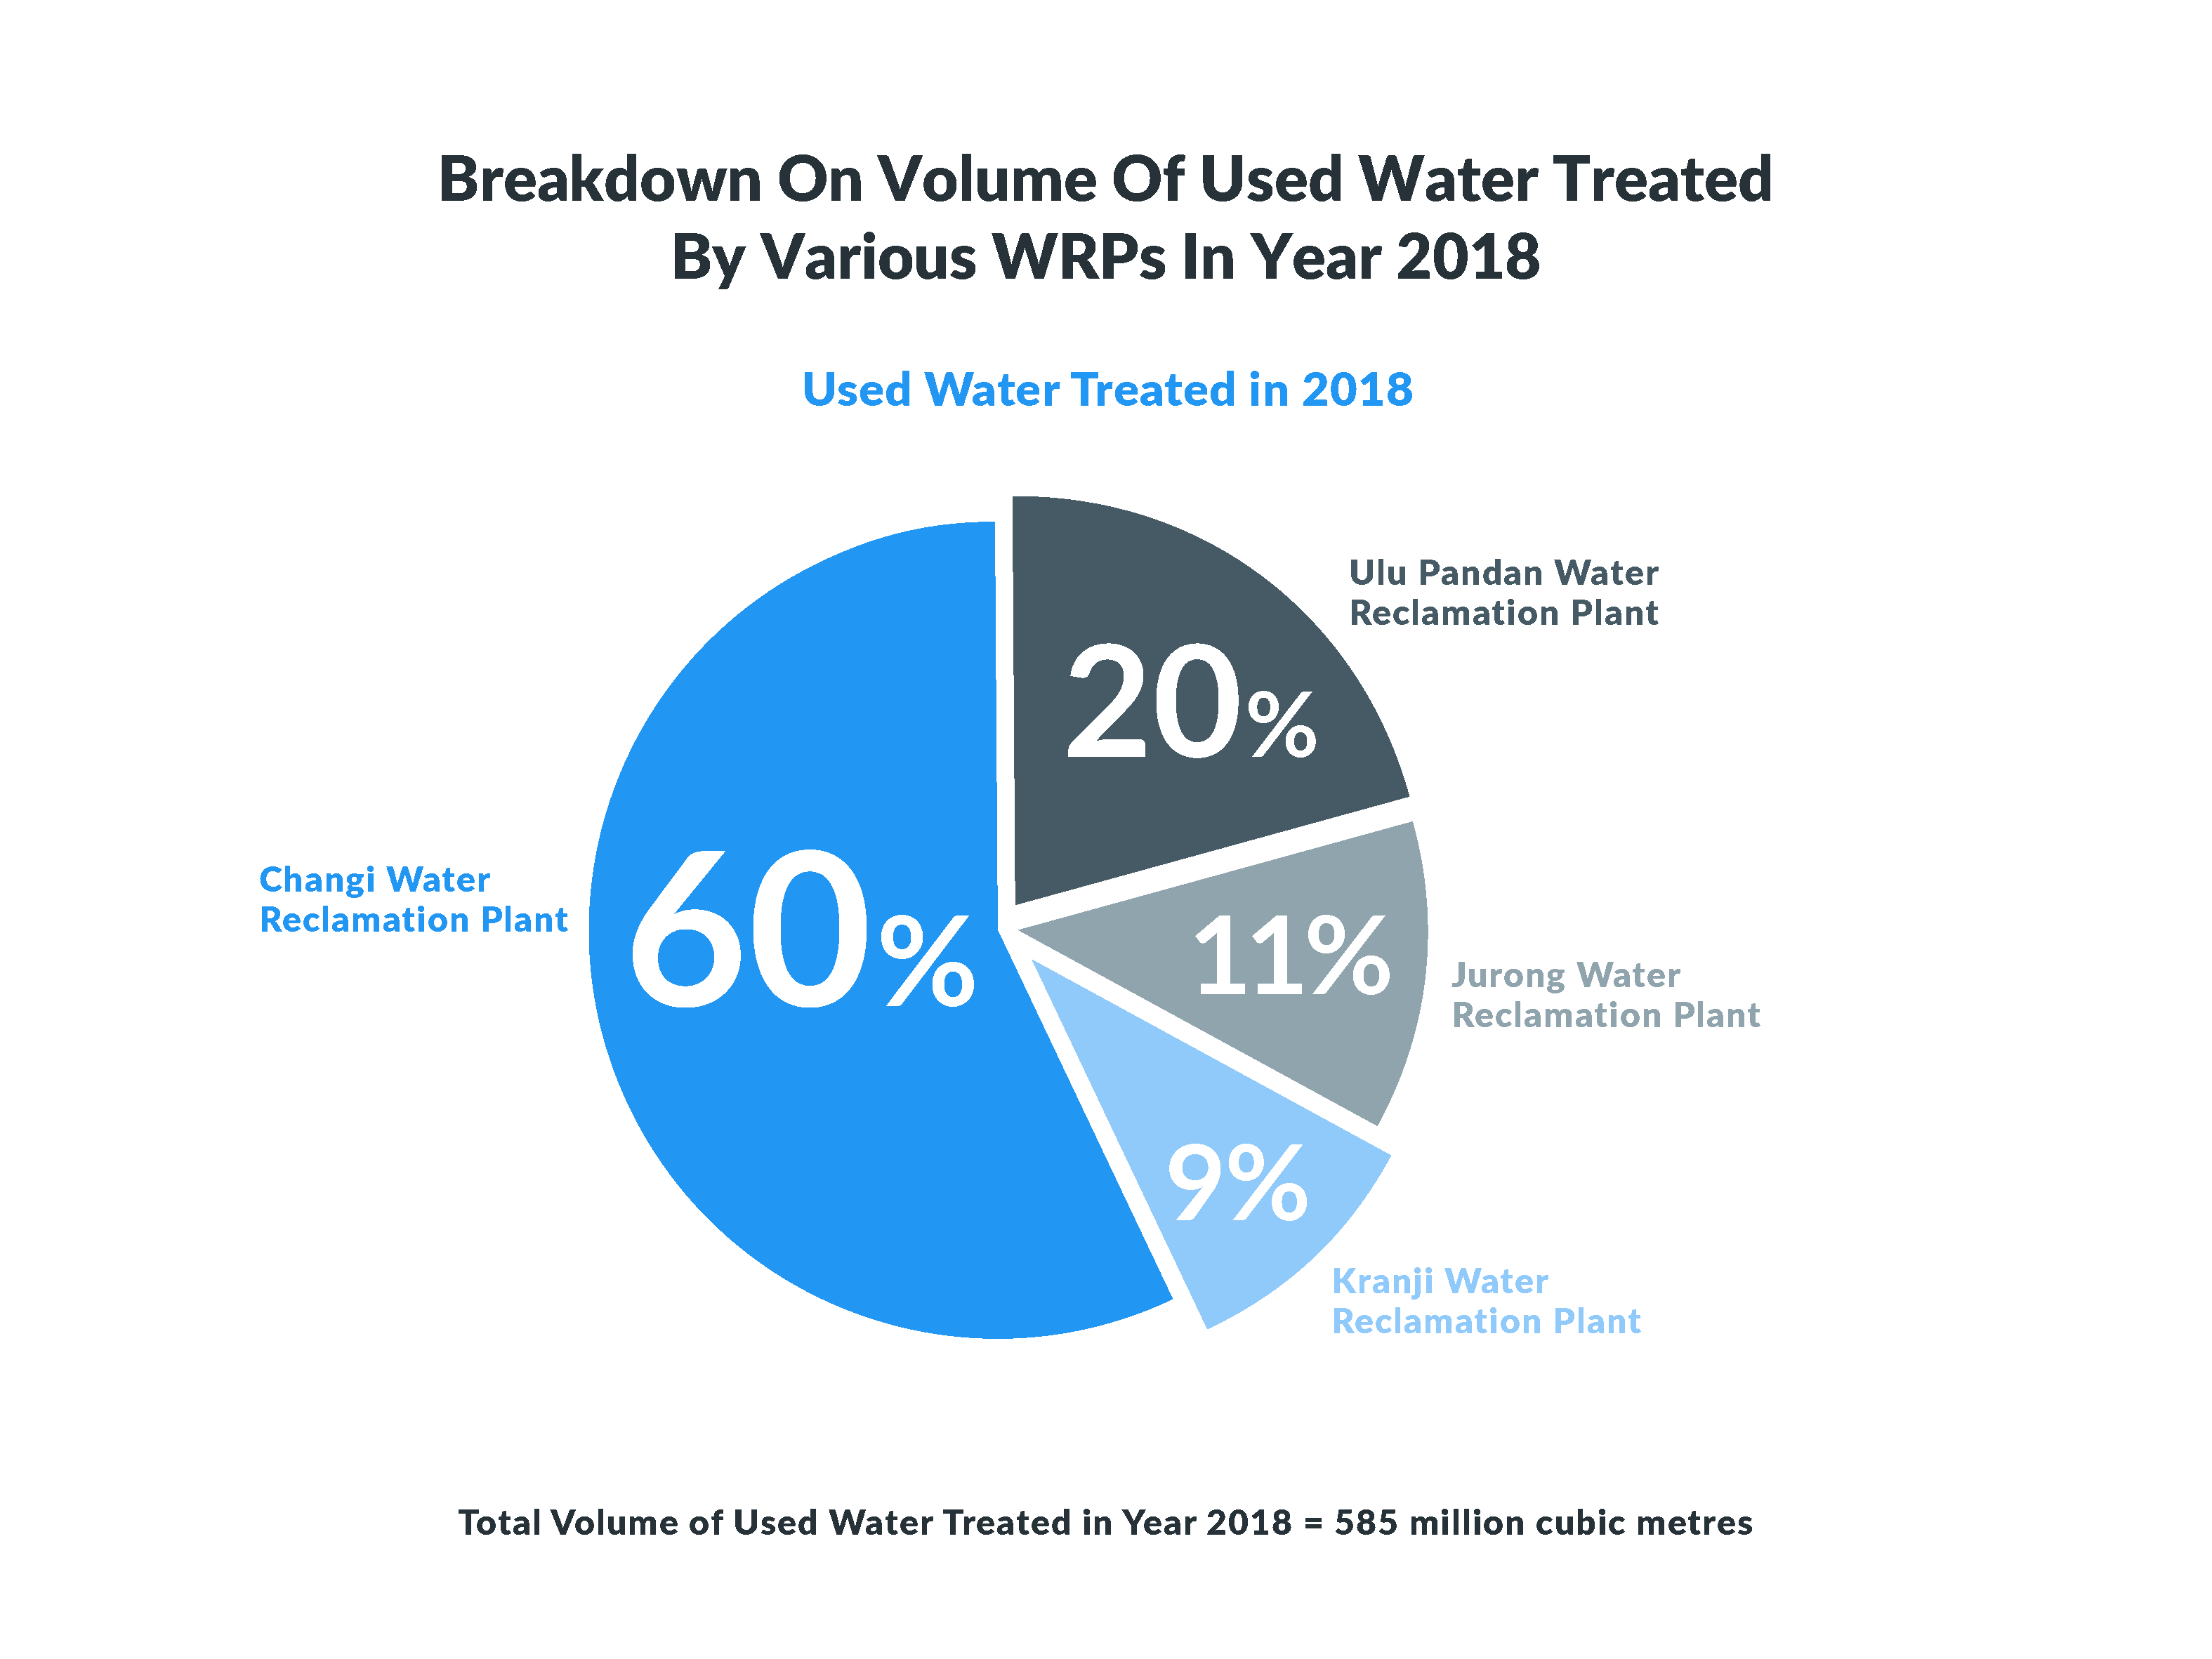 Volume of Used Water Treated